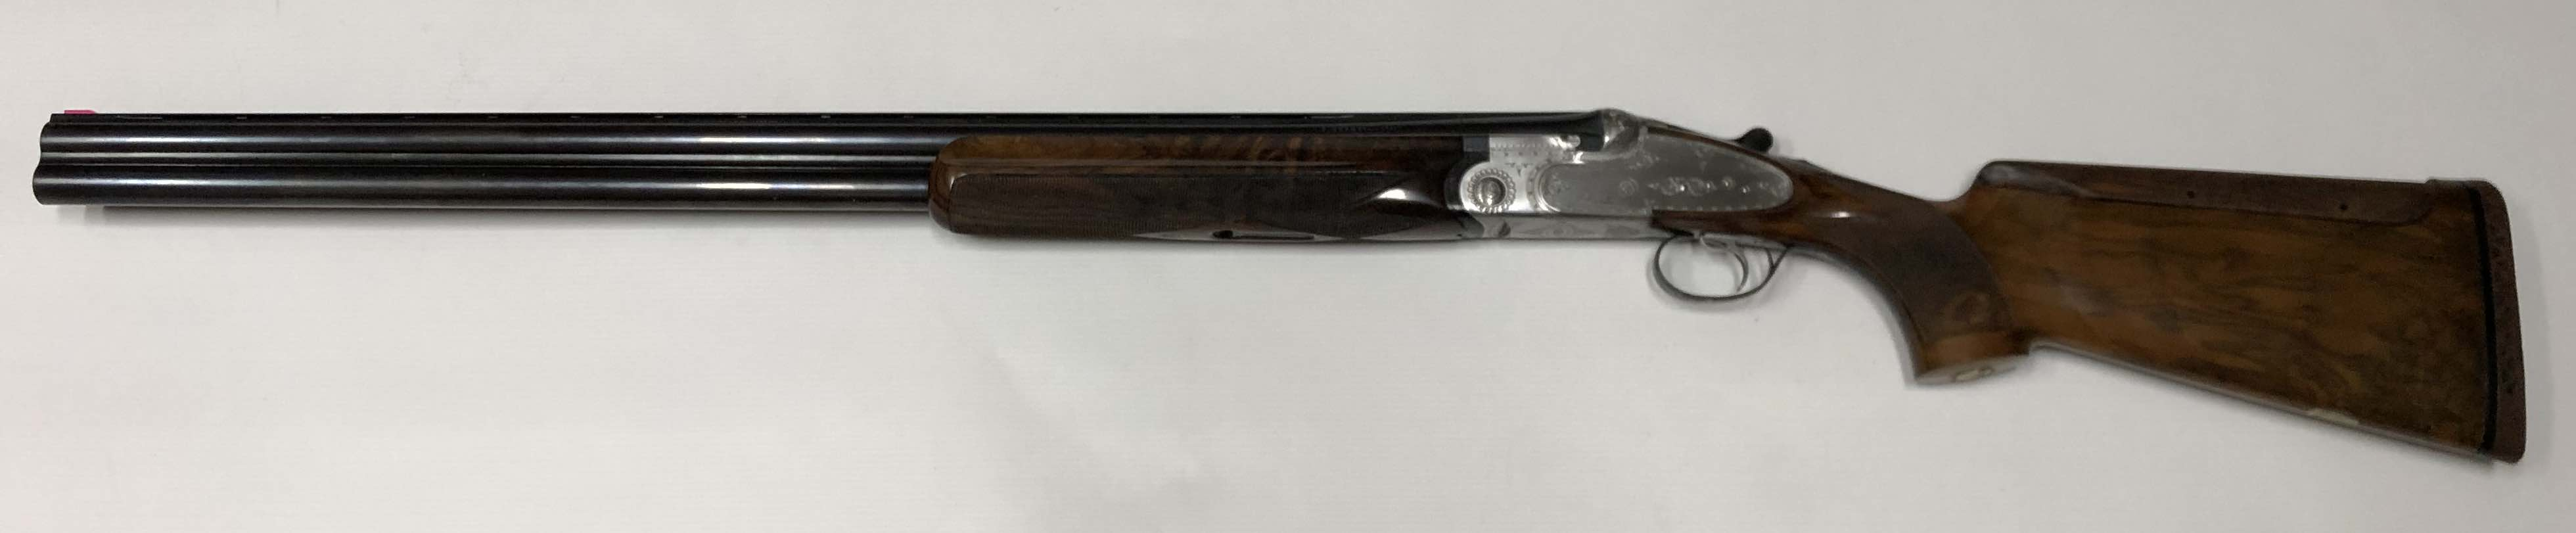 Beretta SO 4 Trap M.S.